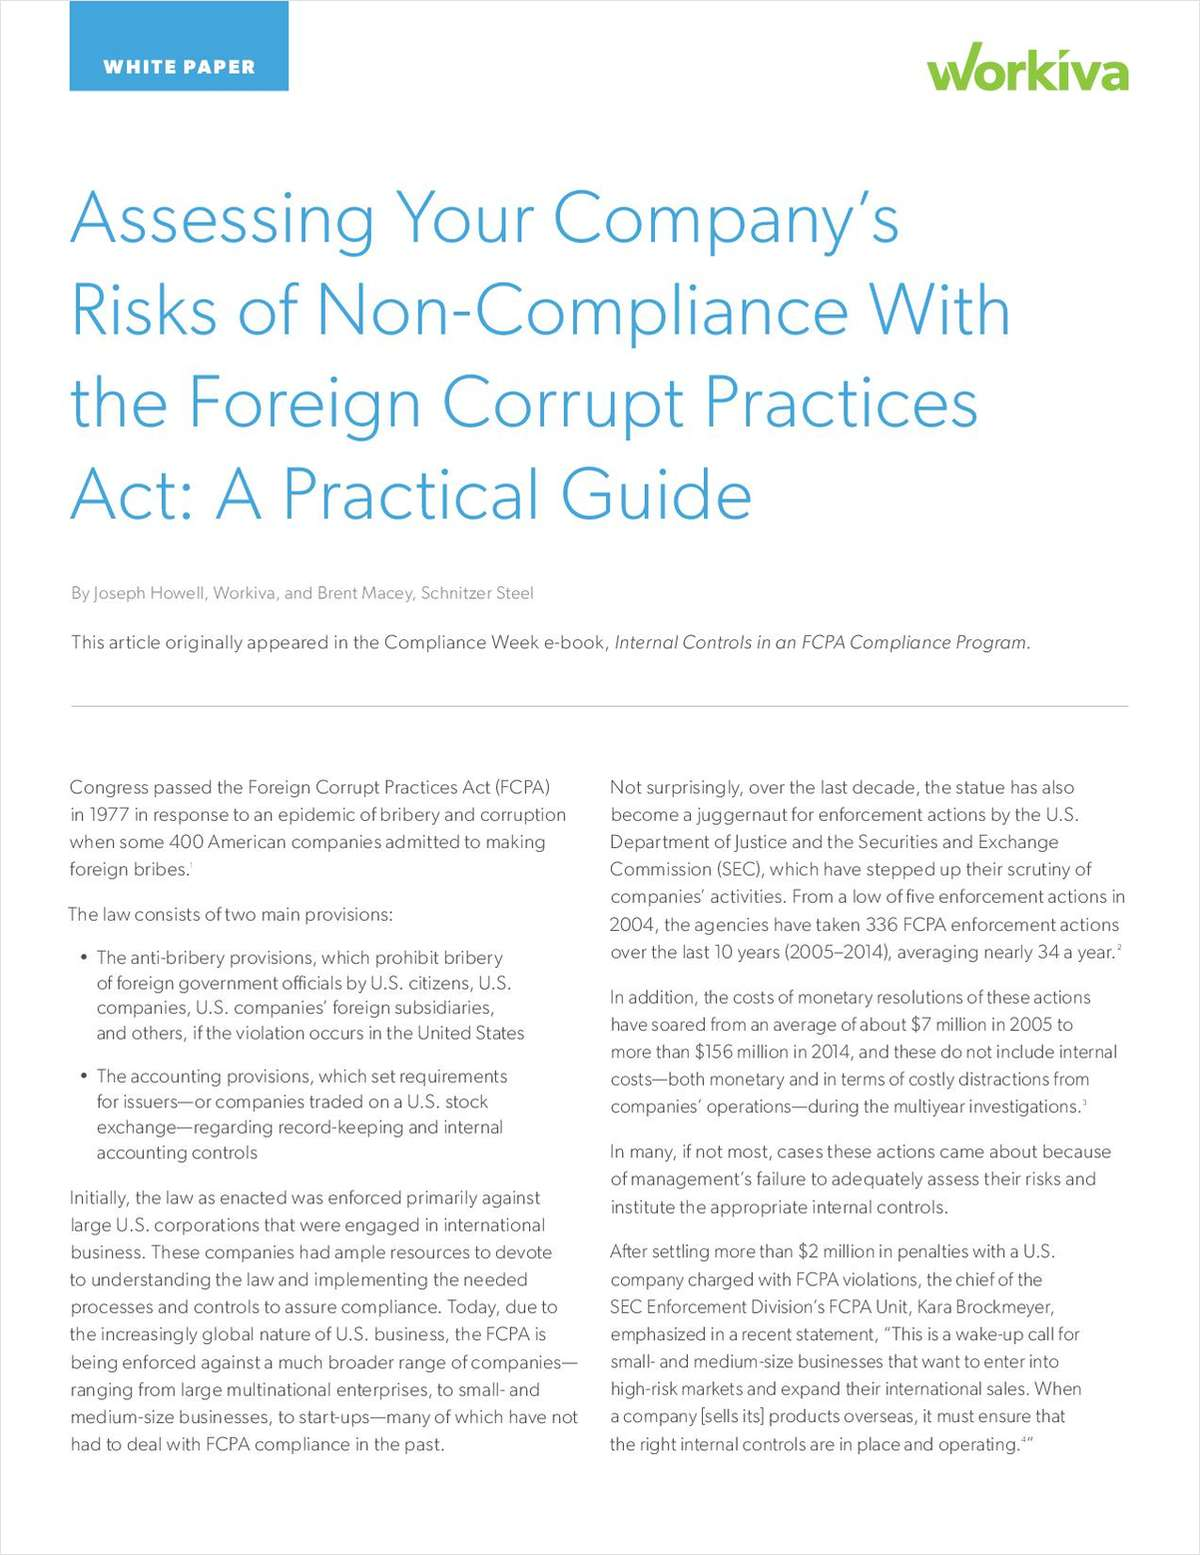 Assessing Your Company's Risks of Non-Compliance with the FCPA